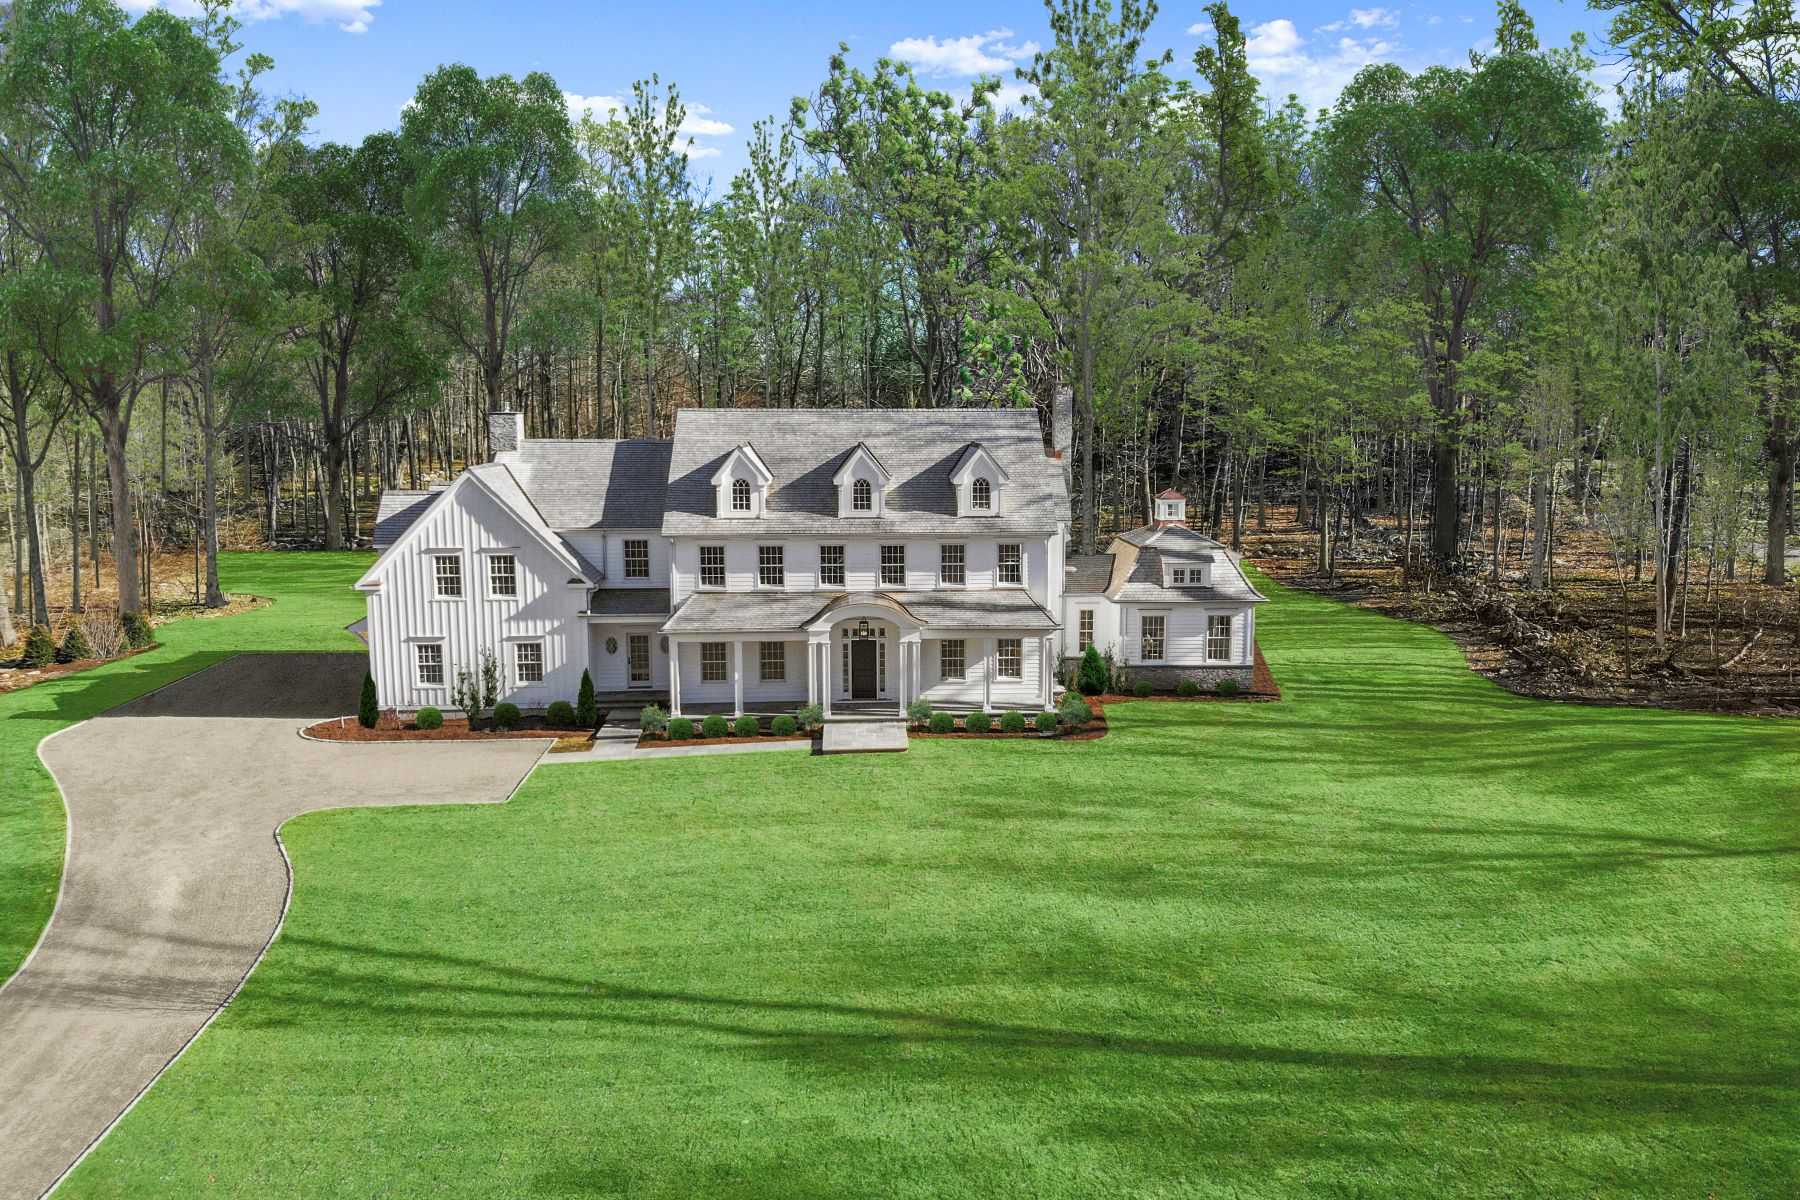 Single Family Homes for Active at 61 Horseshoe Road Darien, Connecticut 06820 United States